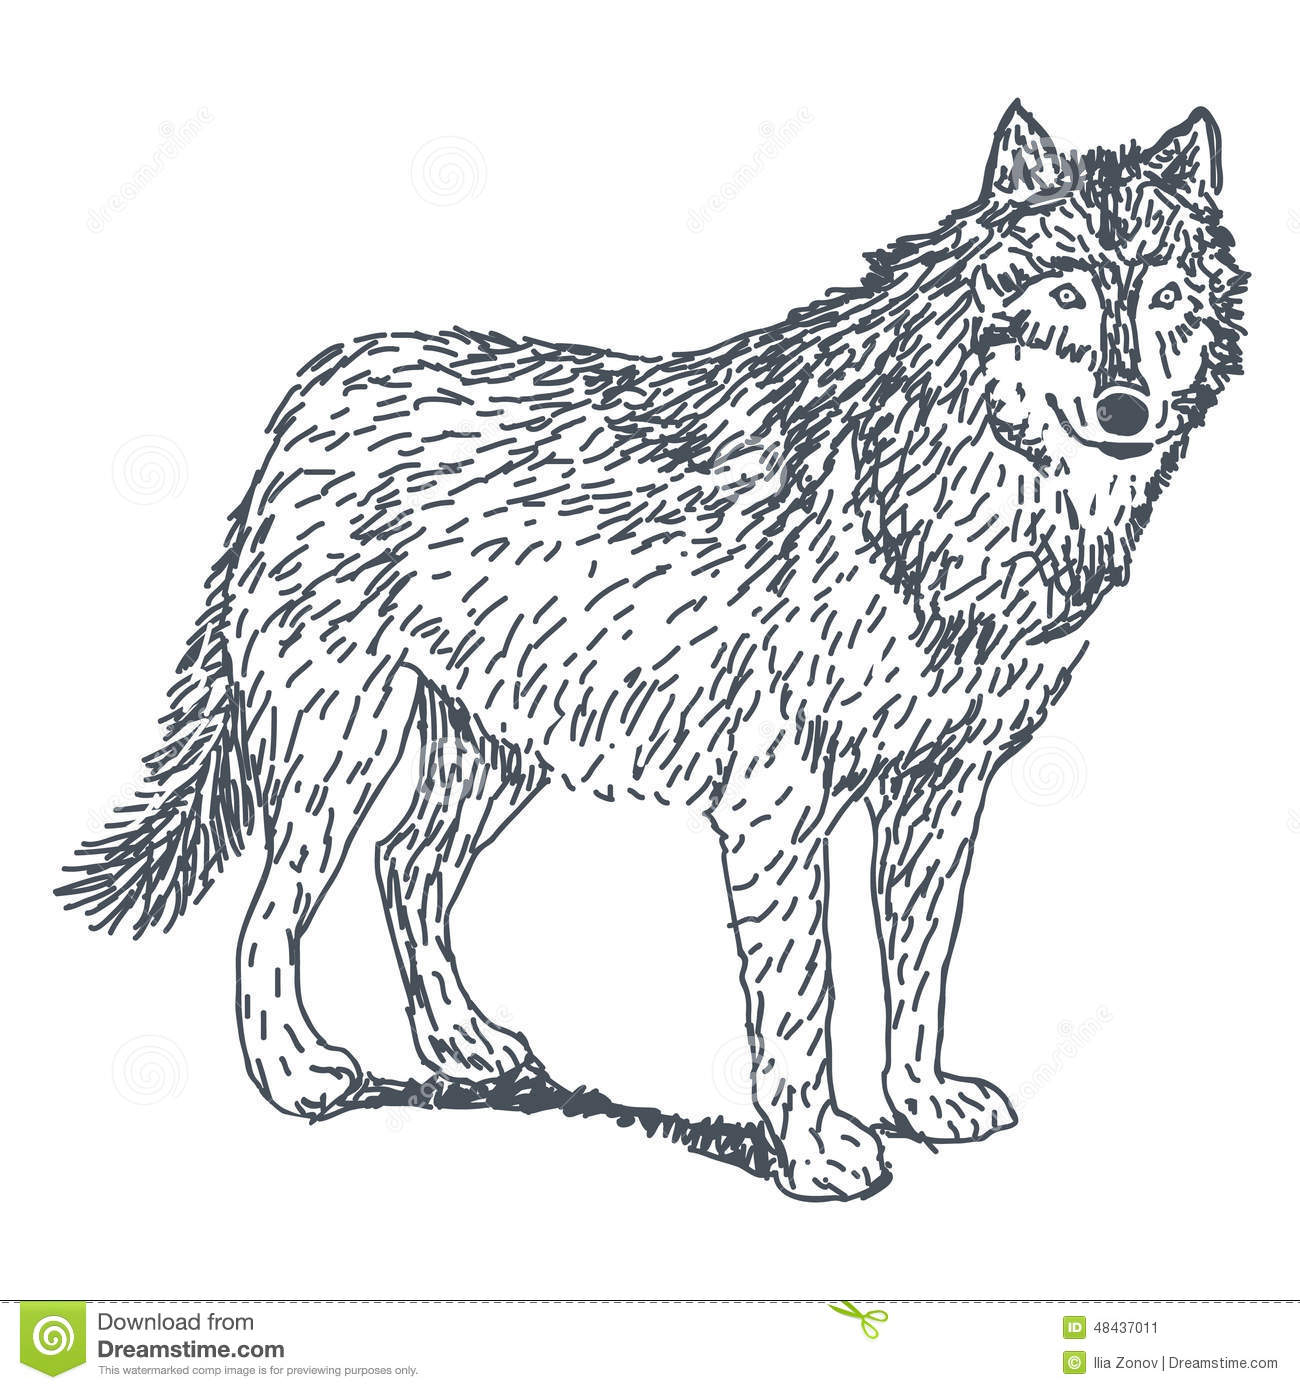 Wolf Drawing Stock Vector - Image: 48437011 Angry Black Wolf Drawing